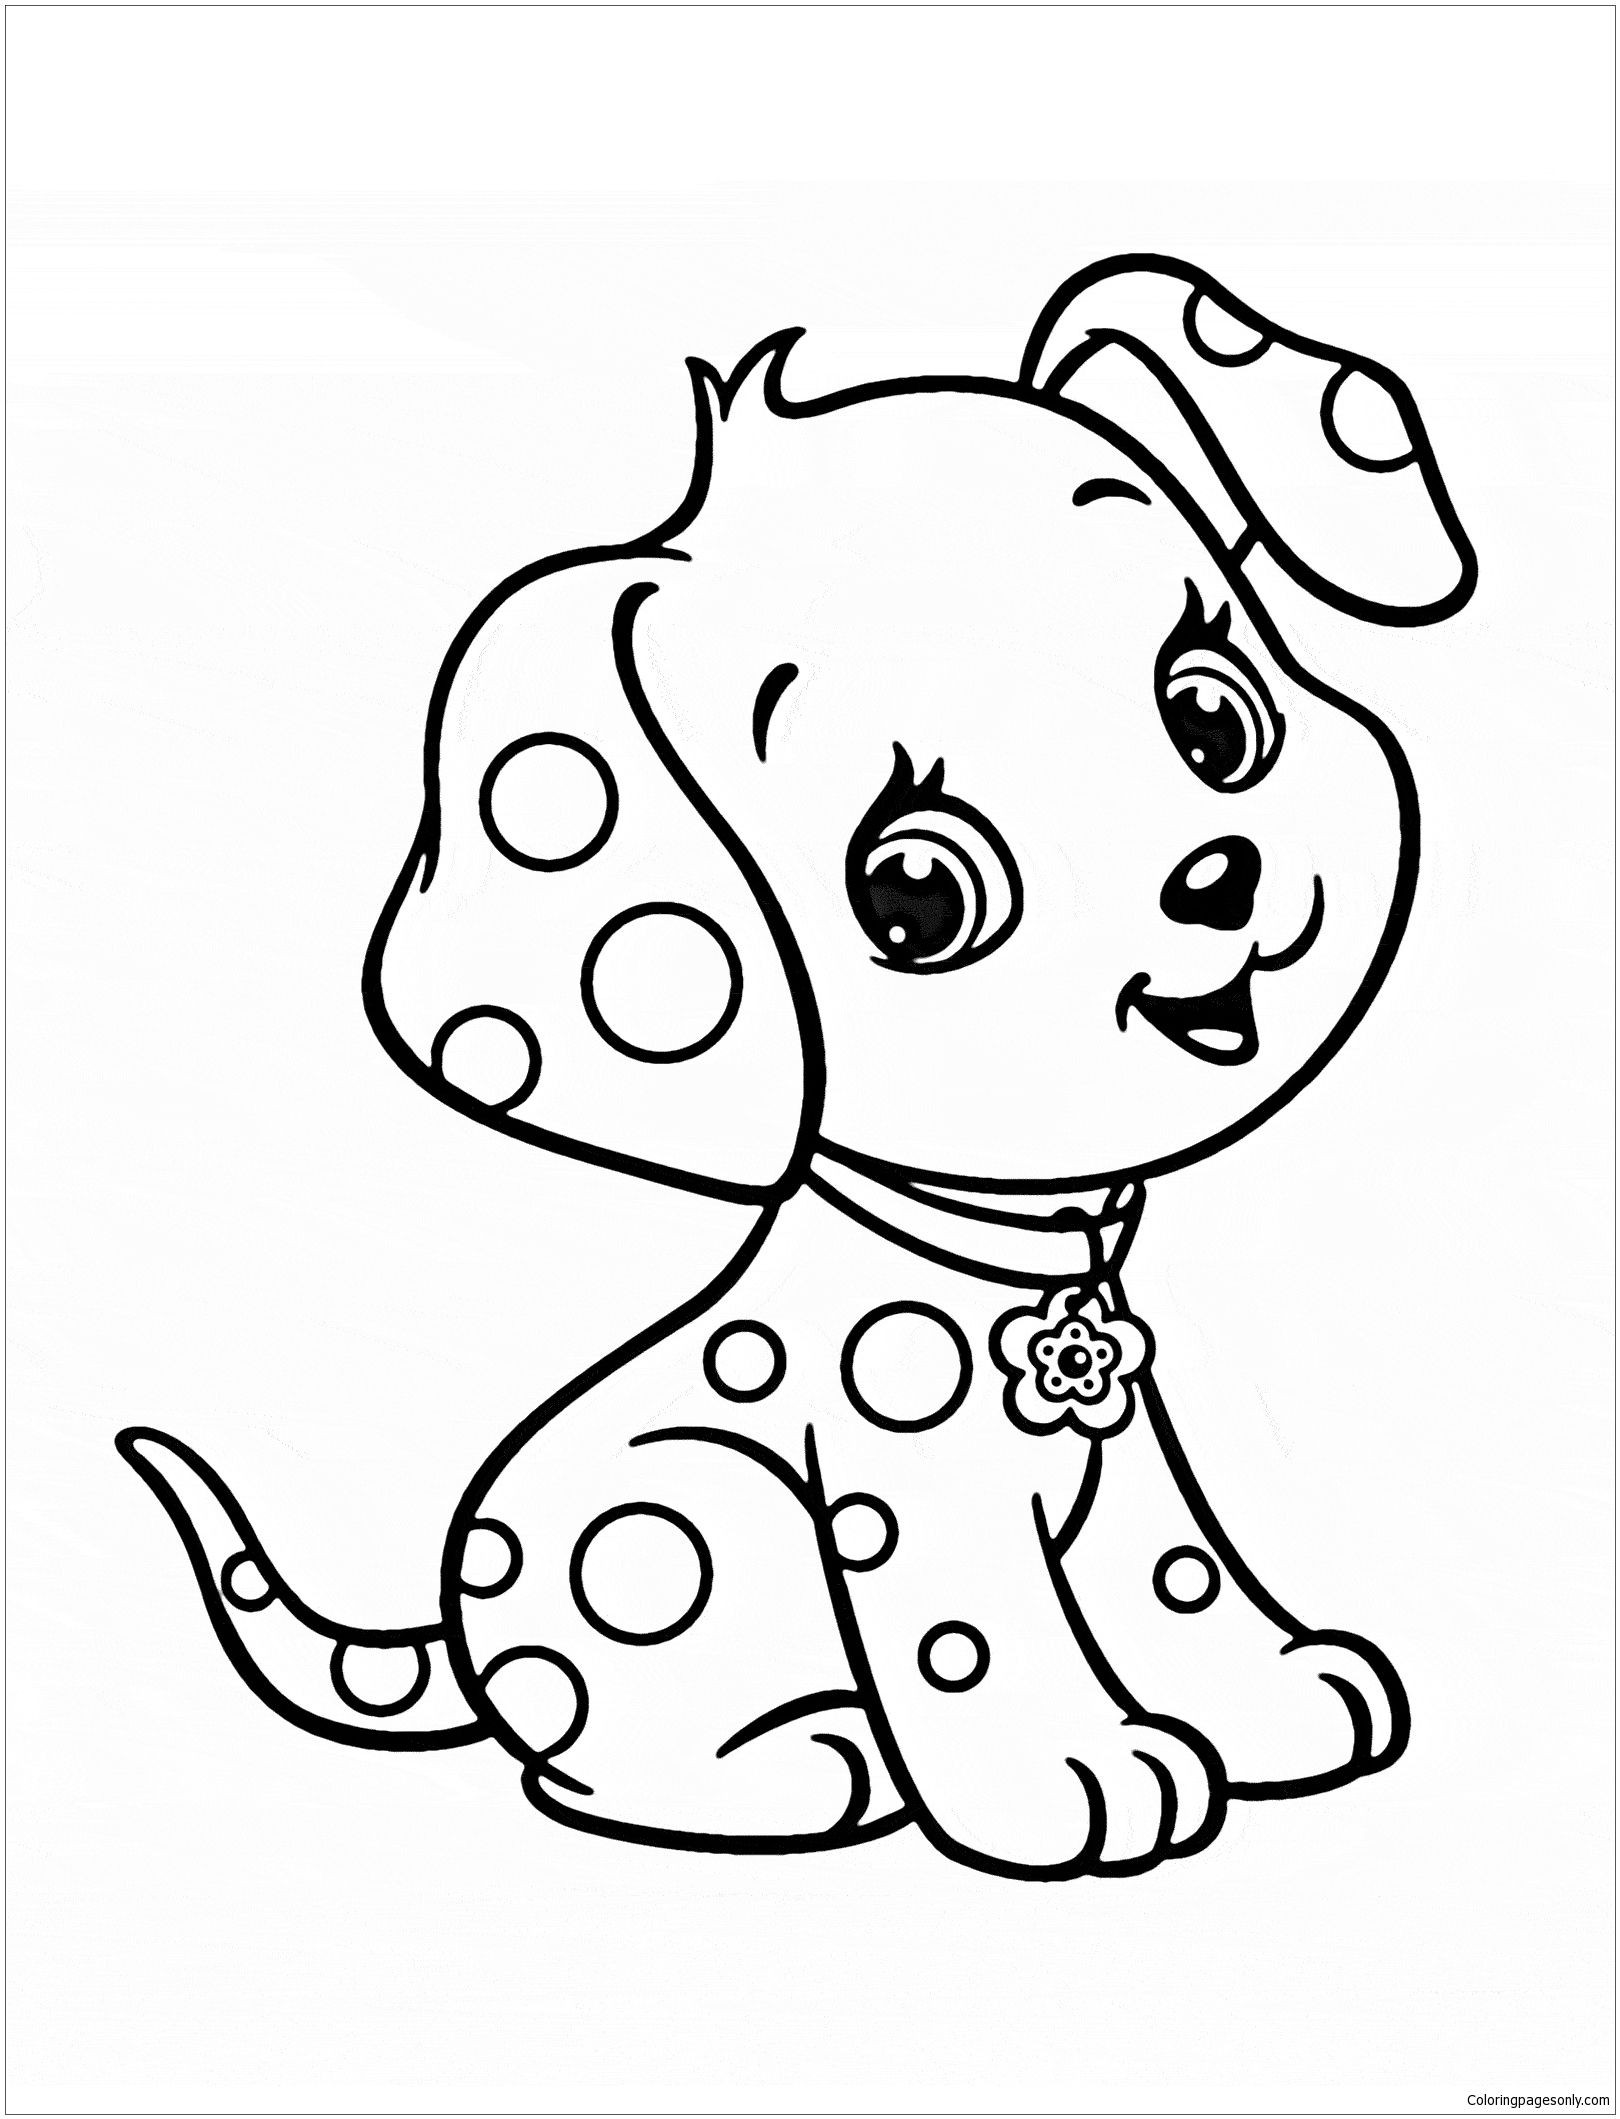 coloring : Cute Dog Coloring Pages New Cute Puppy 5 Coloring Page Imagens  Cute Dog Coloring Pages ~ queens